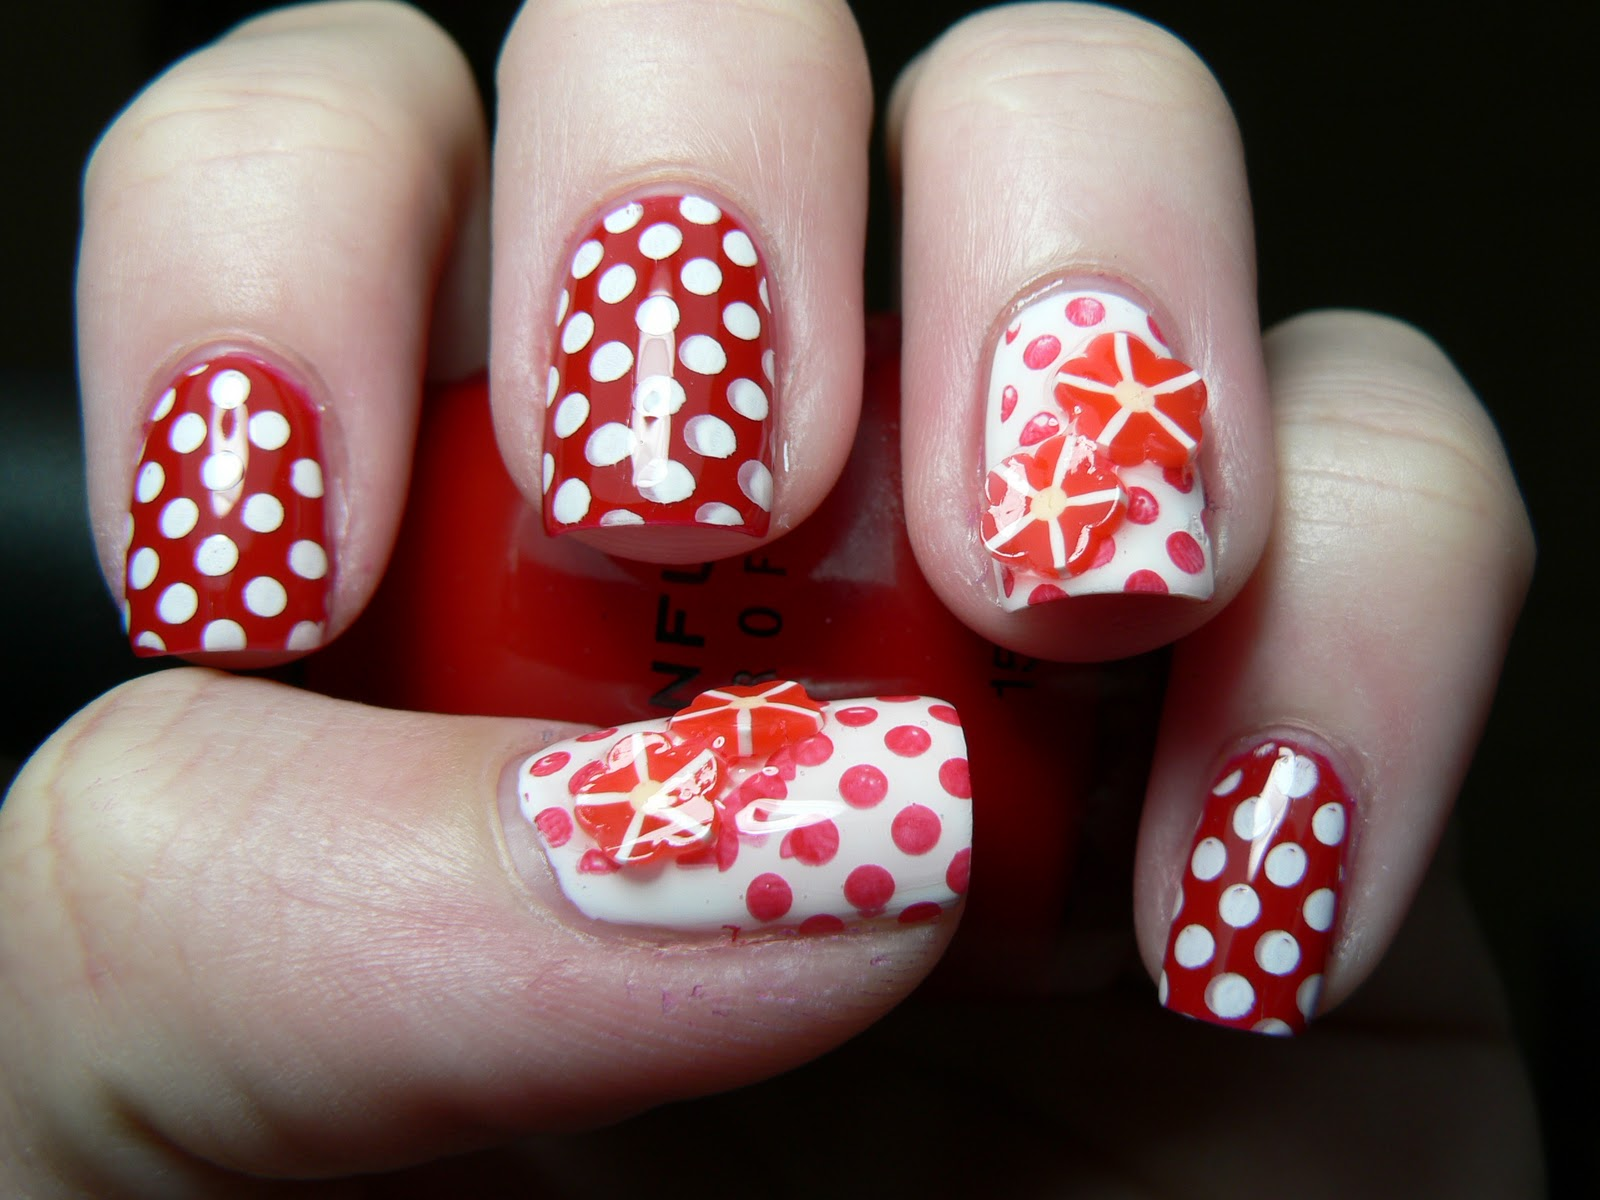 ... popular nail decoration ideas among nail technicians and their clients